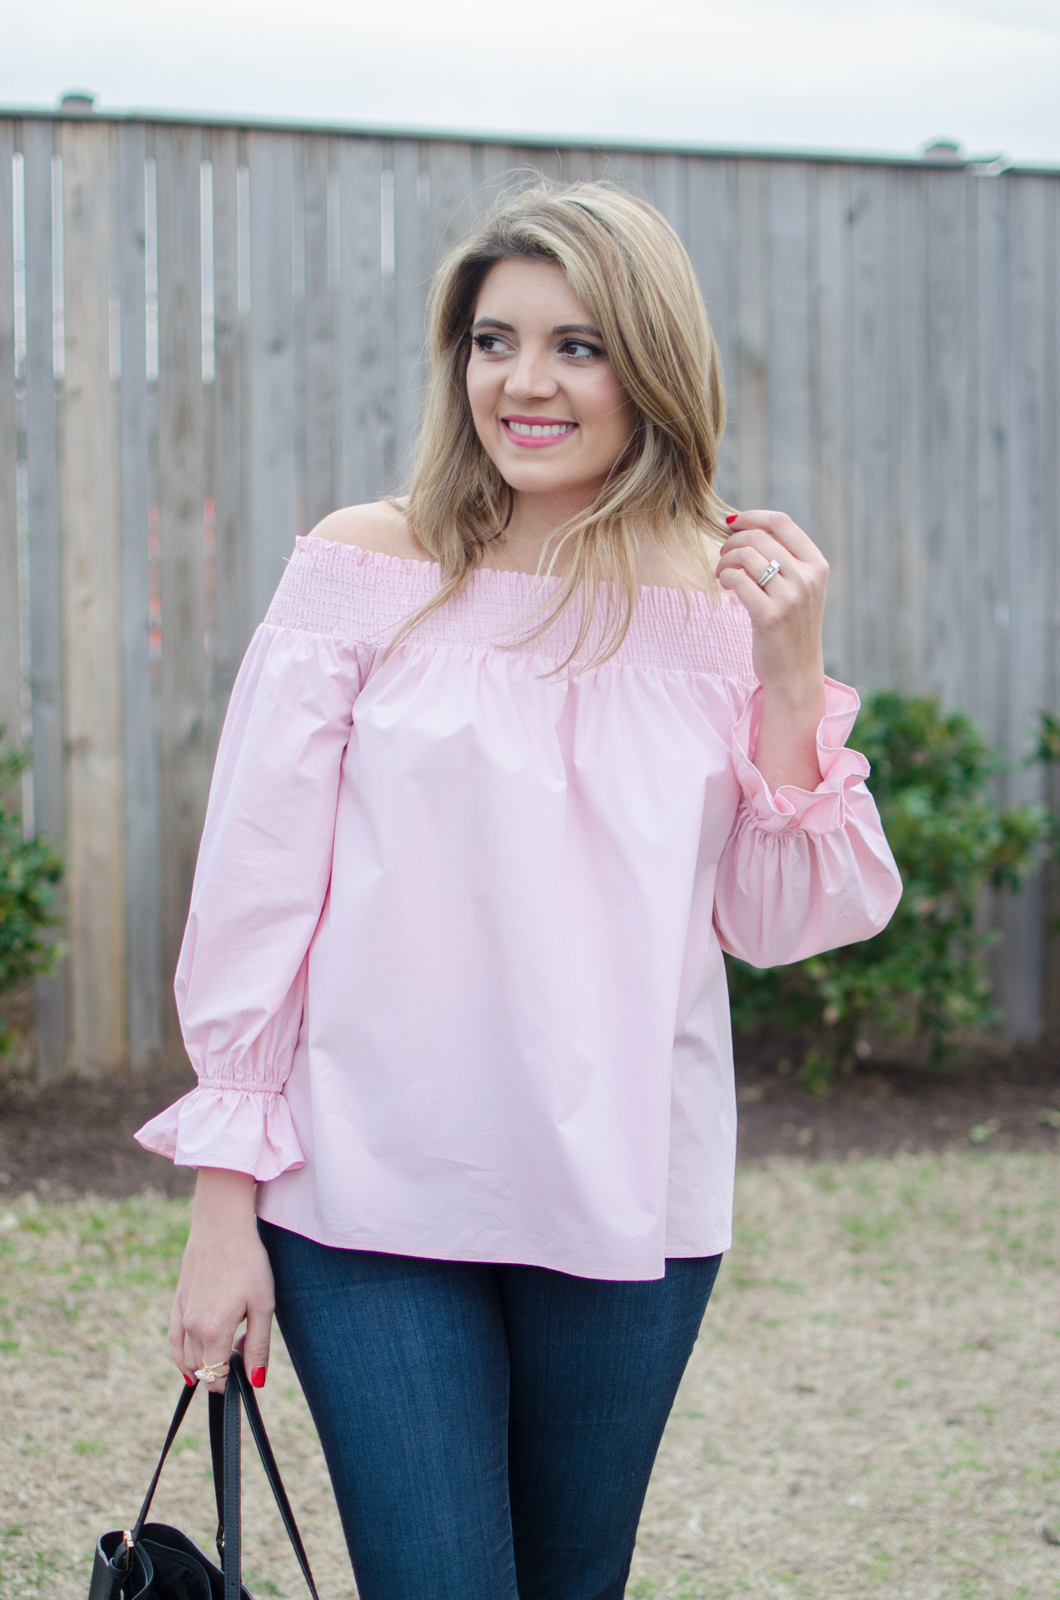 cute girly spring outfit - off shoulder pink top outfit. click through for more cute spring outfits or to shop this look! | www.bylaurenm.com